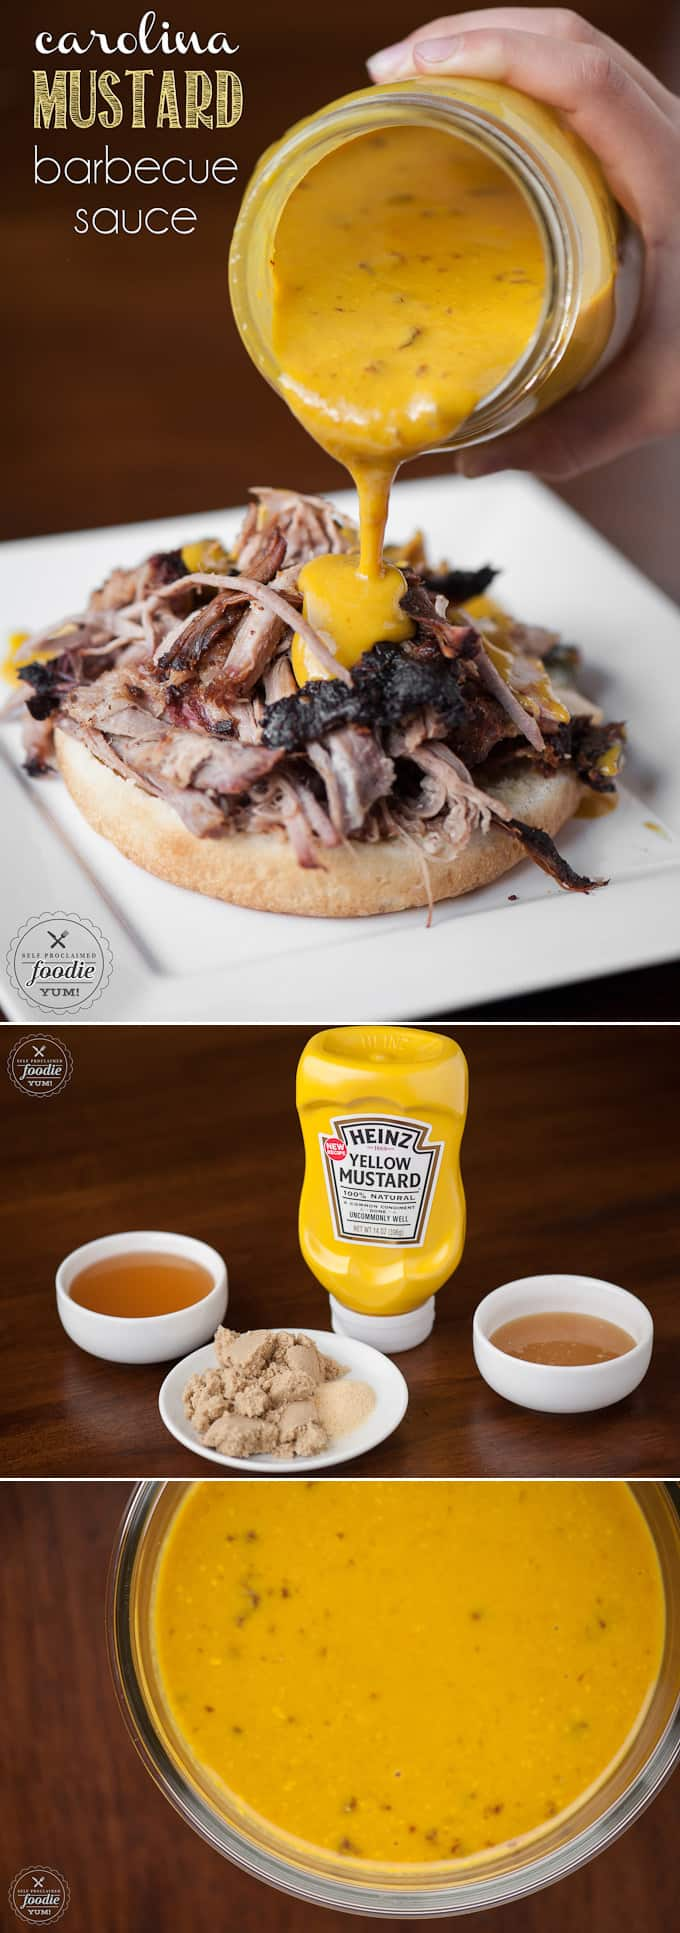 Easy bbq recipes with ketchup mustard